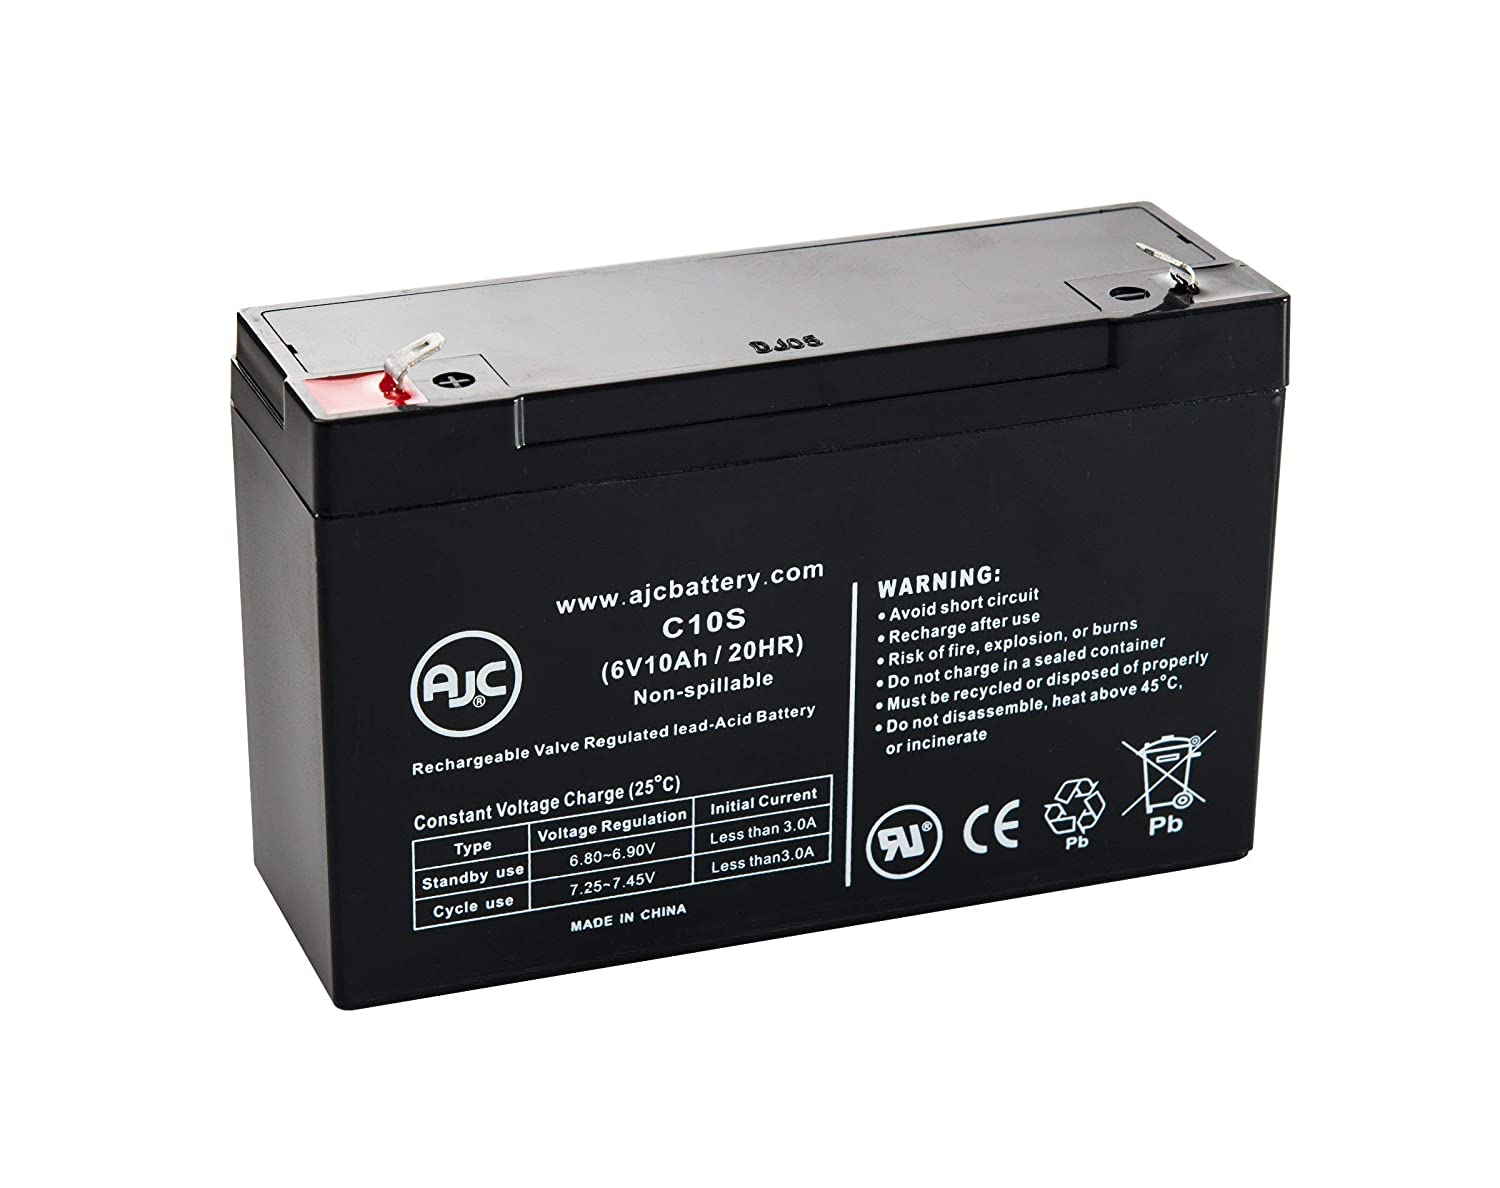 HKbil 3FM10 6V 10Ah Sealed Lead Acid Battery - This is an AJC Brand Replacement AJC Battery